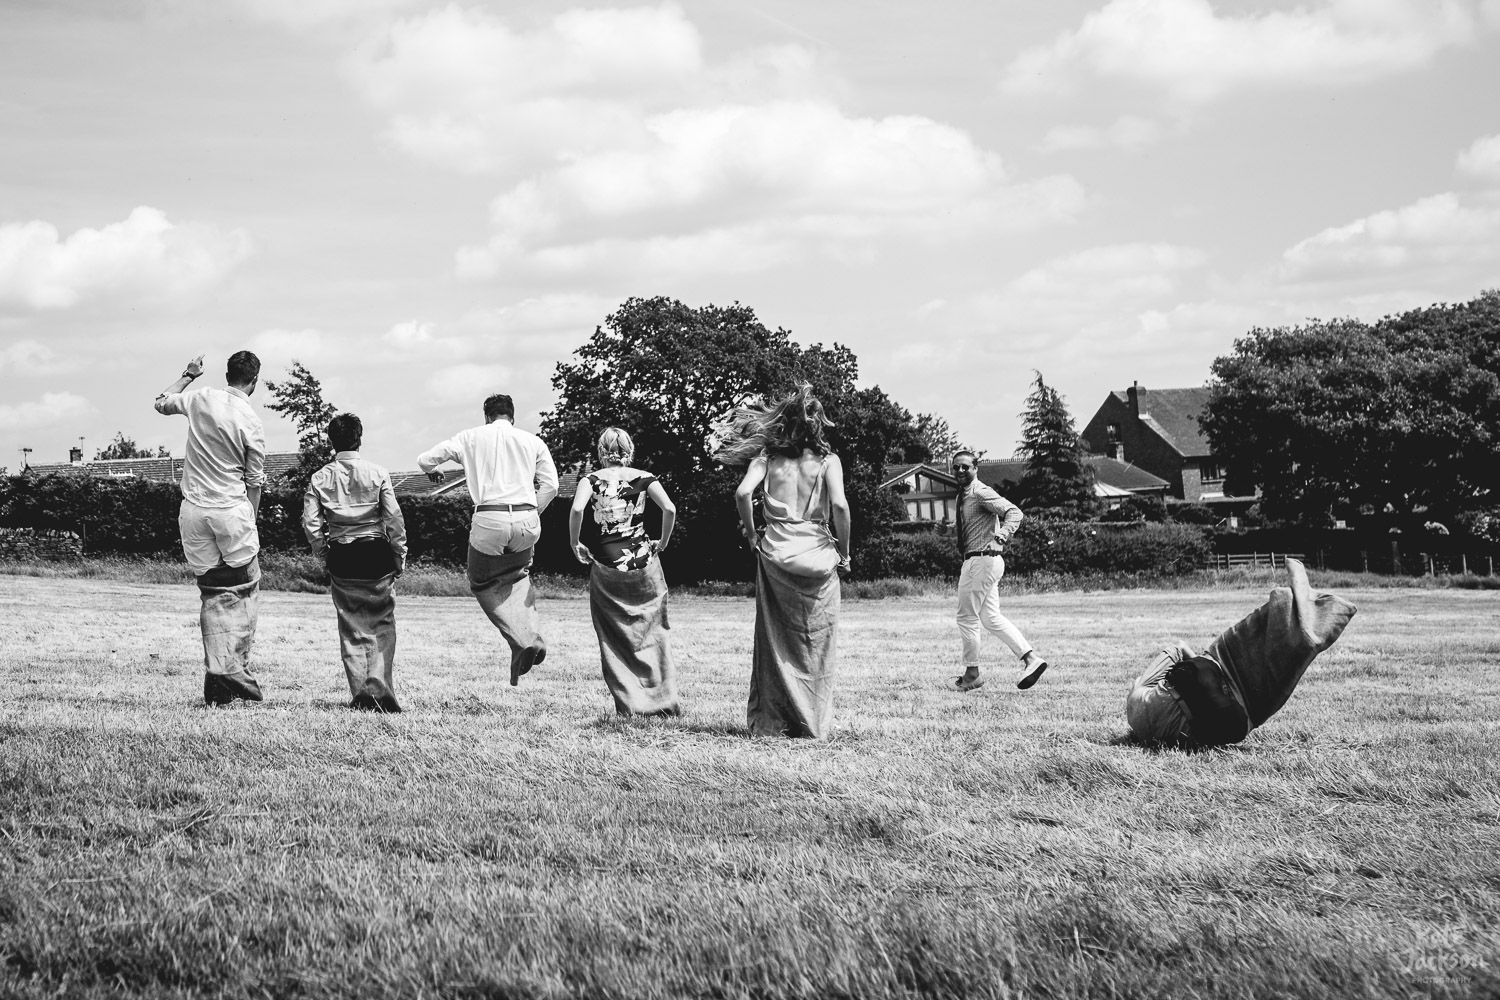 Guests sack racing during wedding games at fun diy festival wedding in Sheffield